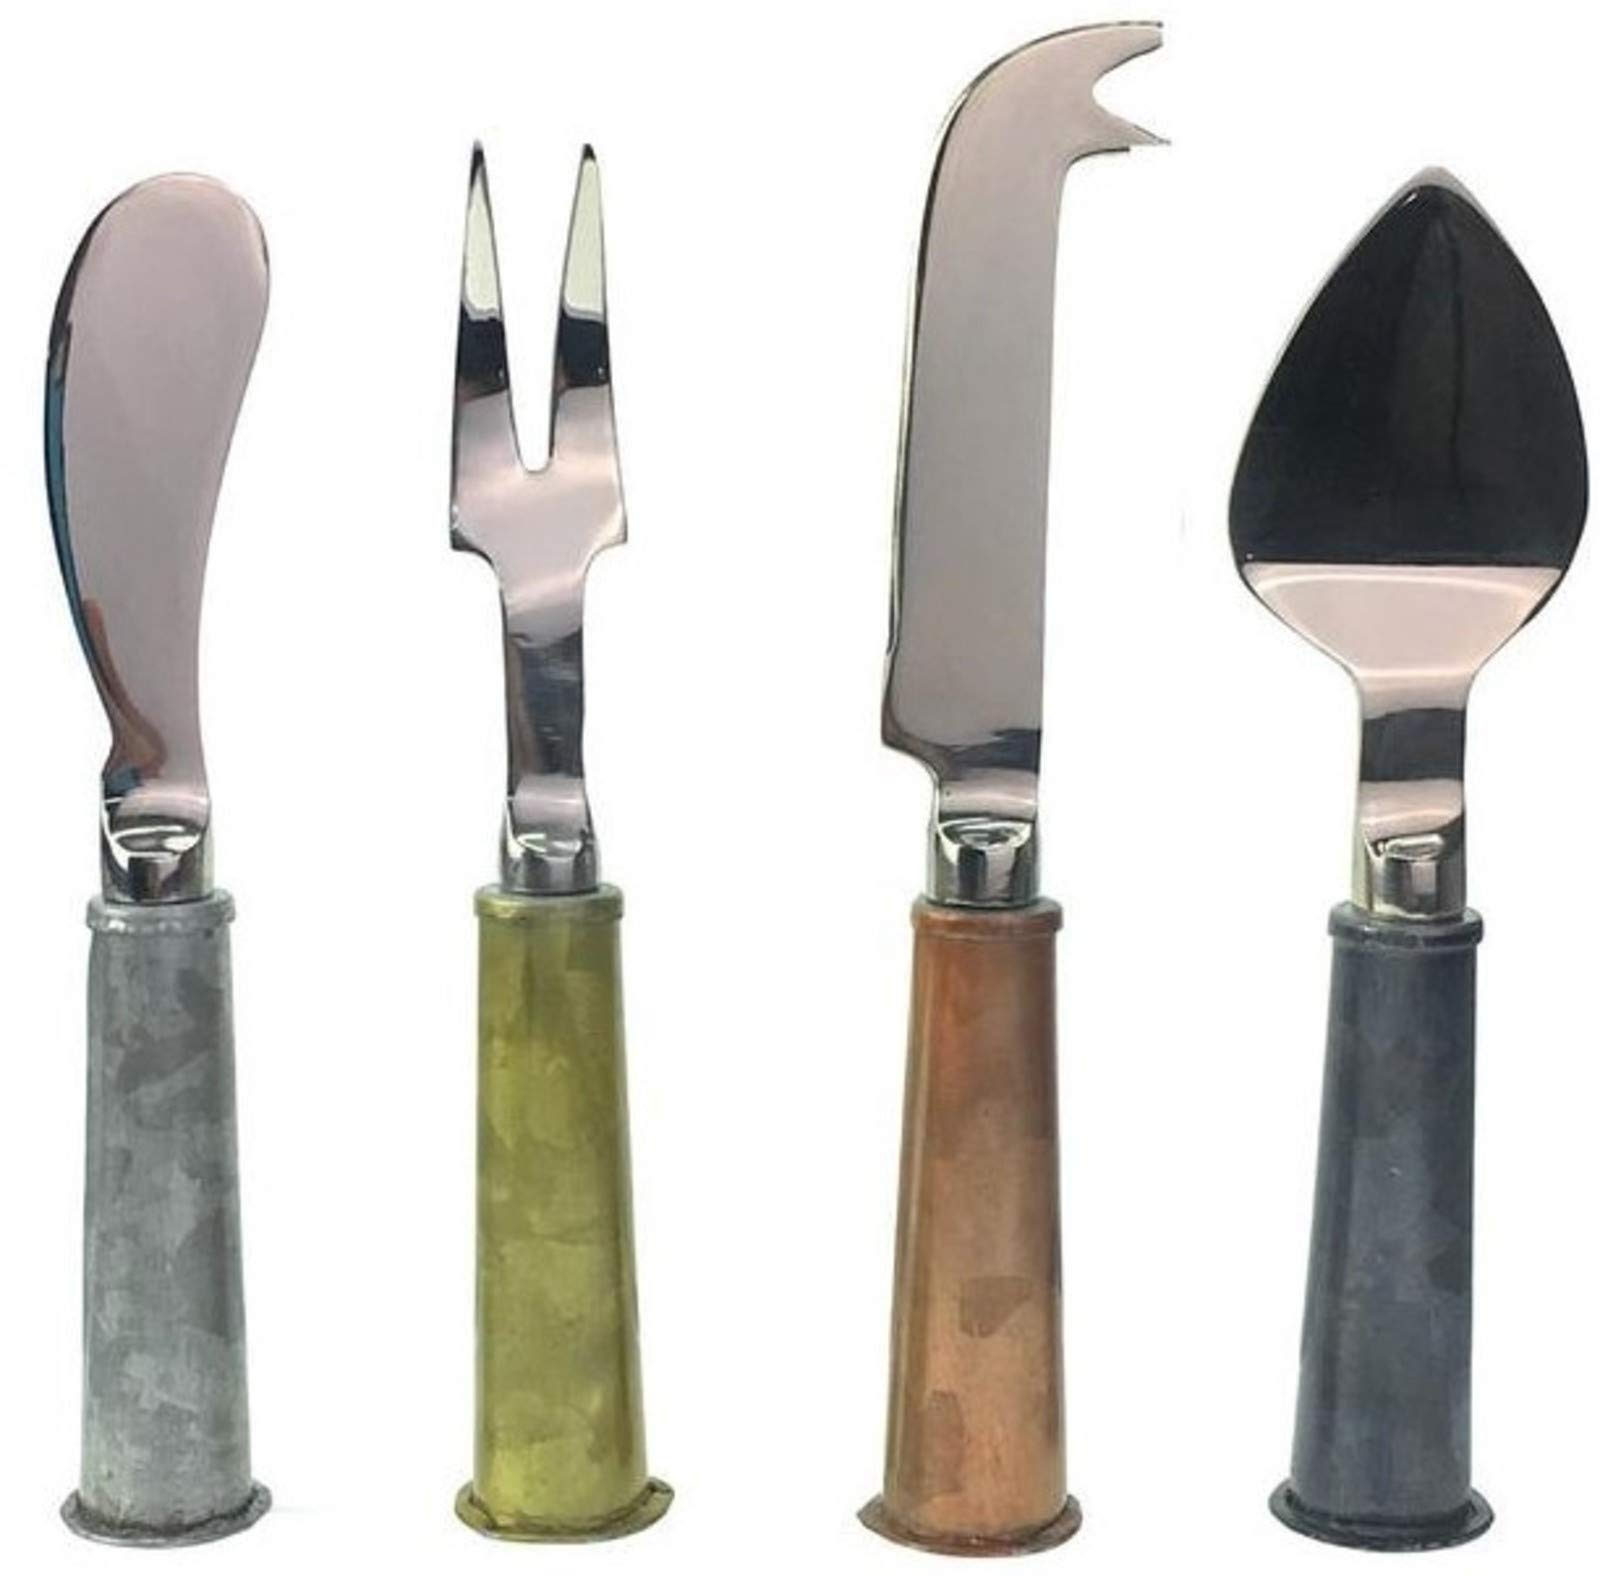 Galrose CHEESE KNIFE SET Galvanized Iron Handles-Stainless Steel Blades Quality Stunning Elegant 4 Piece Knives Set-Perfect for the Home Entertainer/Cheese Lover 6th Wedding Anniversary Gift Idea